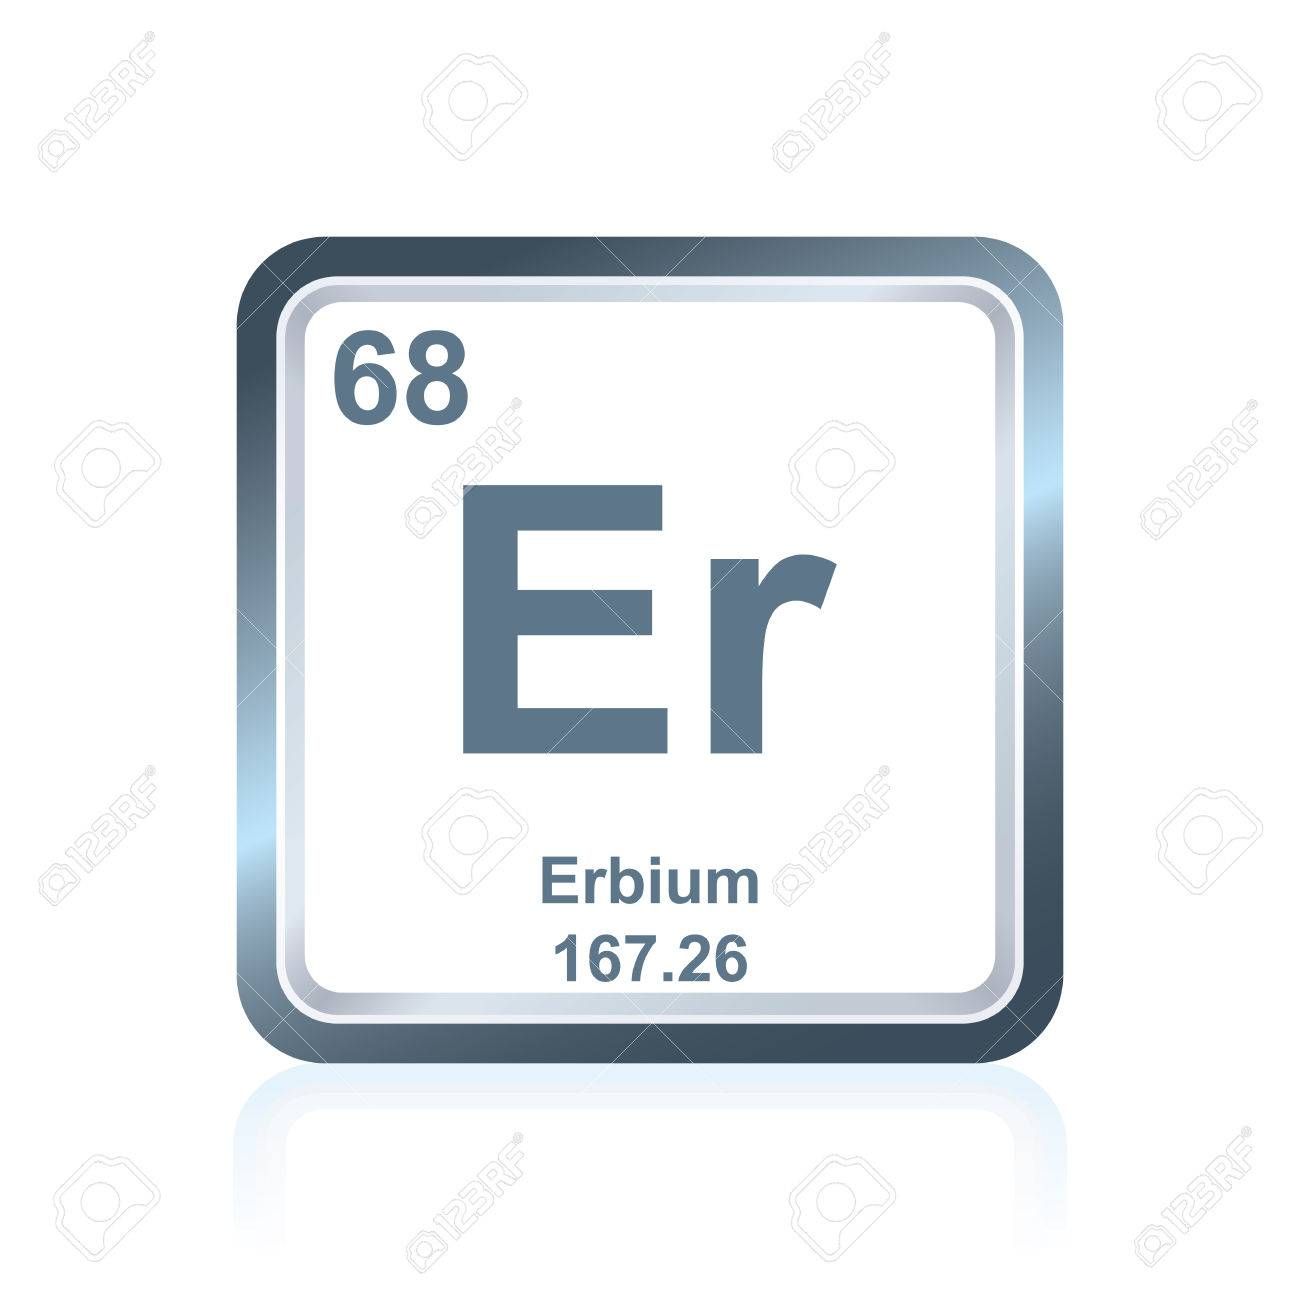 Symbol Of Chemical Element Erbium As Seen On The Periodic Table